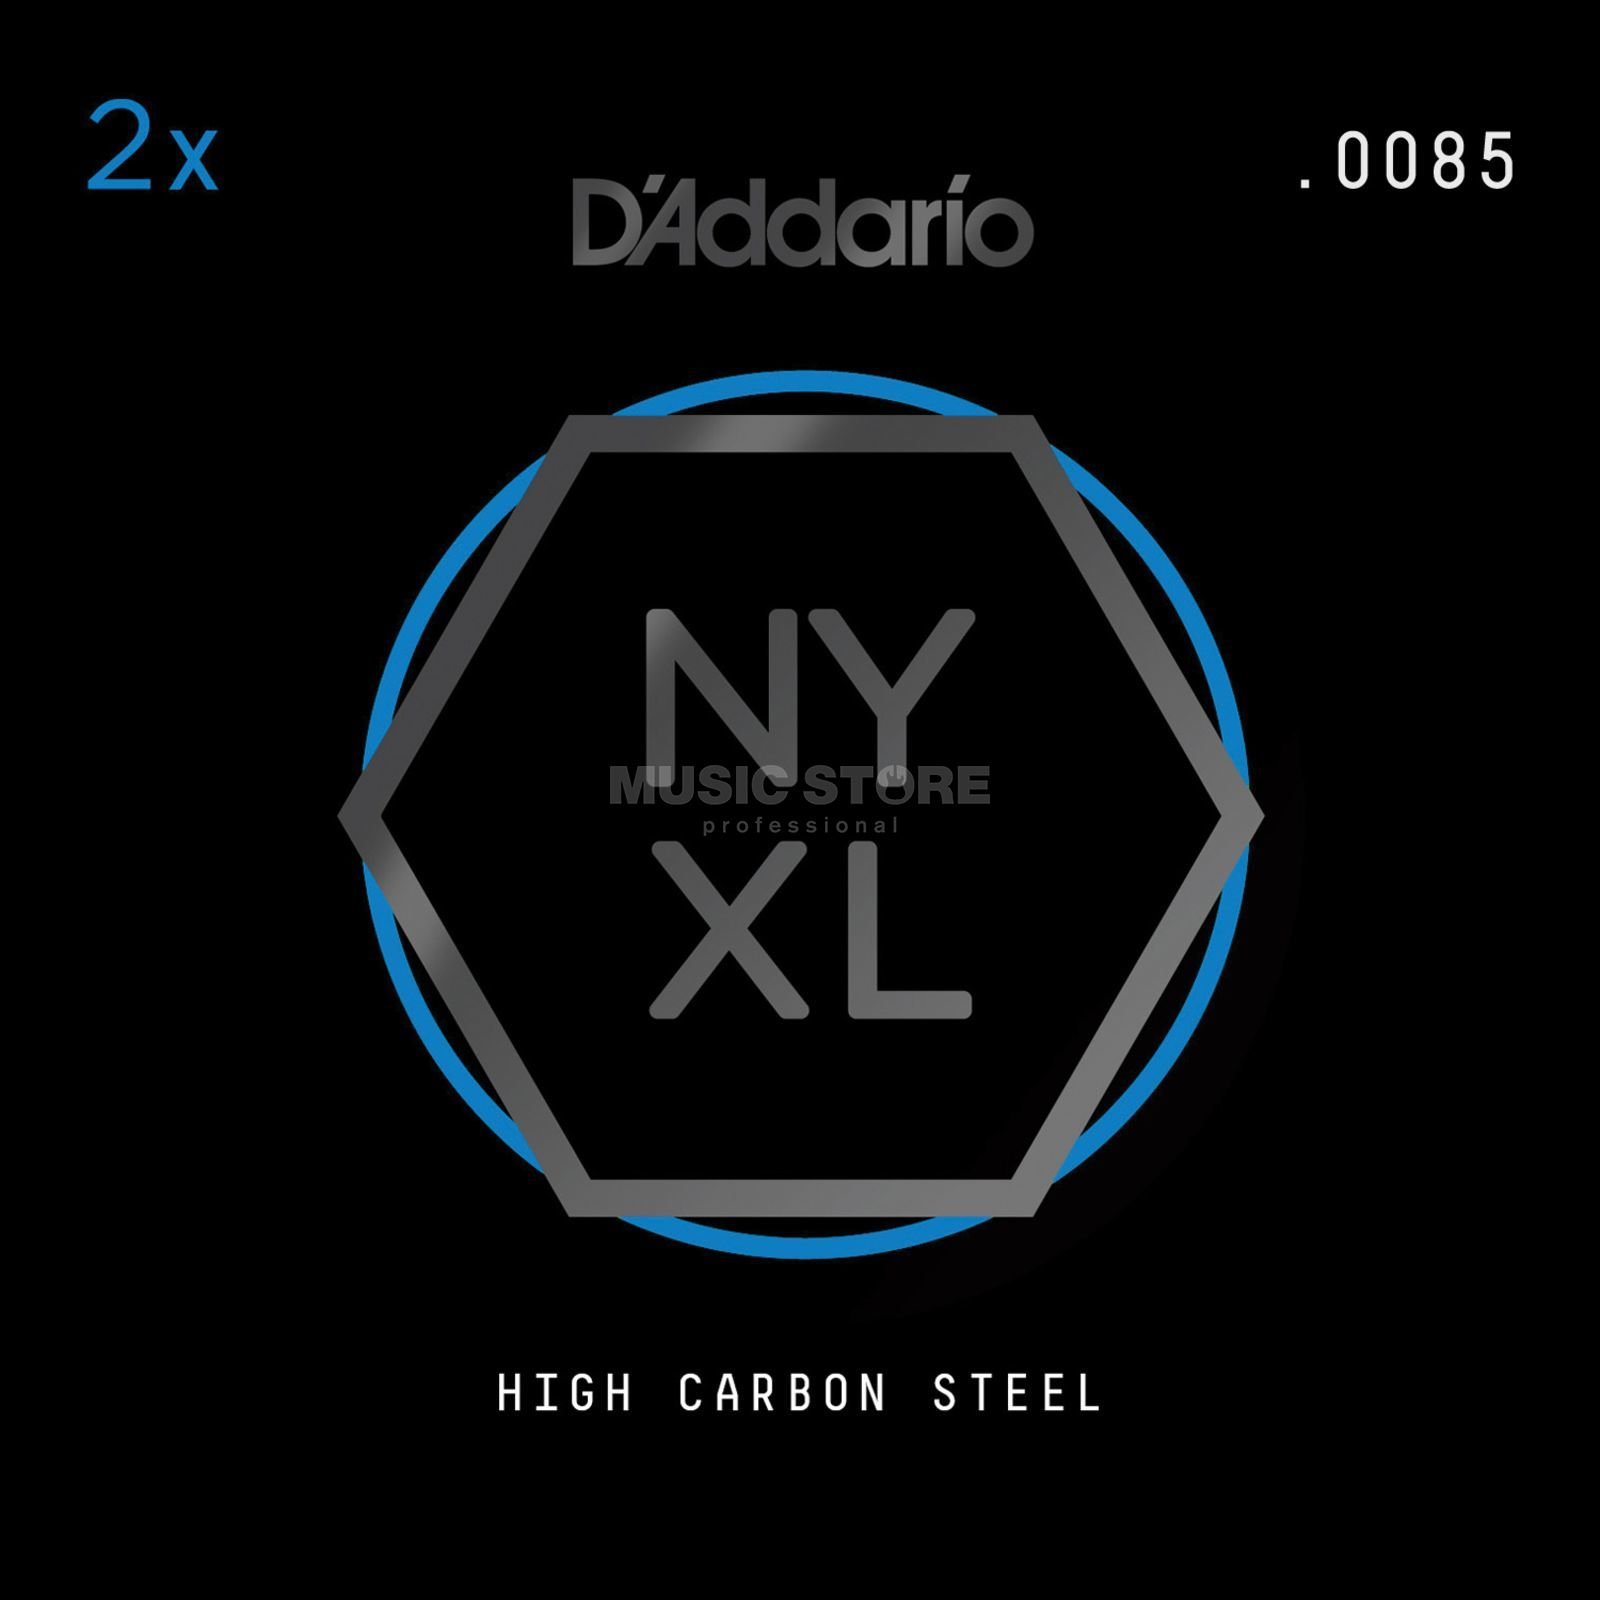 D'Addario NYPL0085 Plain Single String 2-Pack - High Carbon Steel Produktbillede